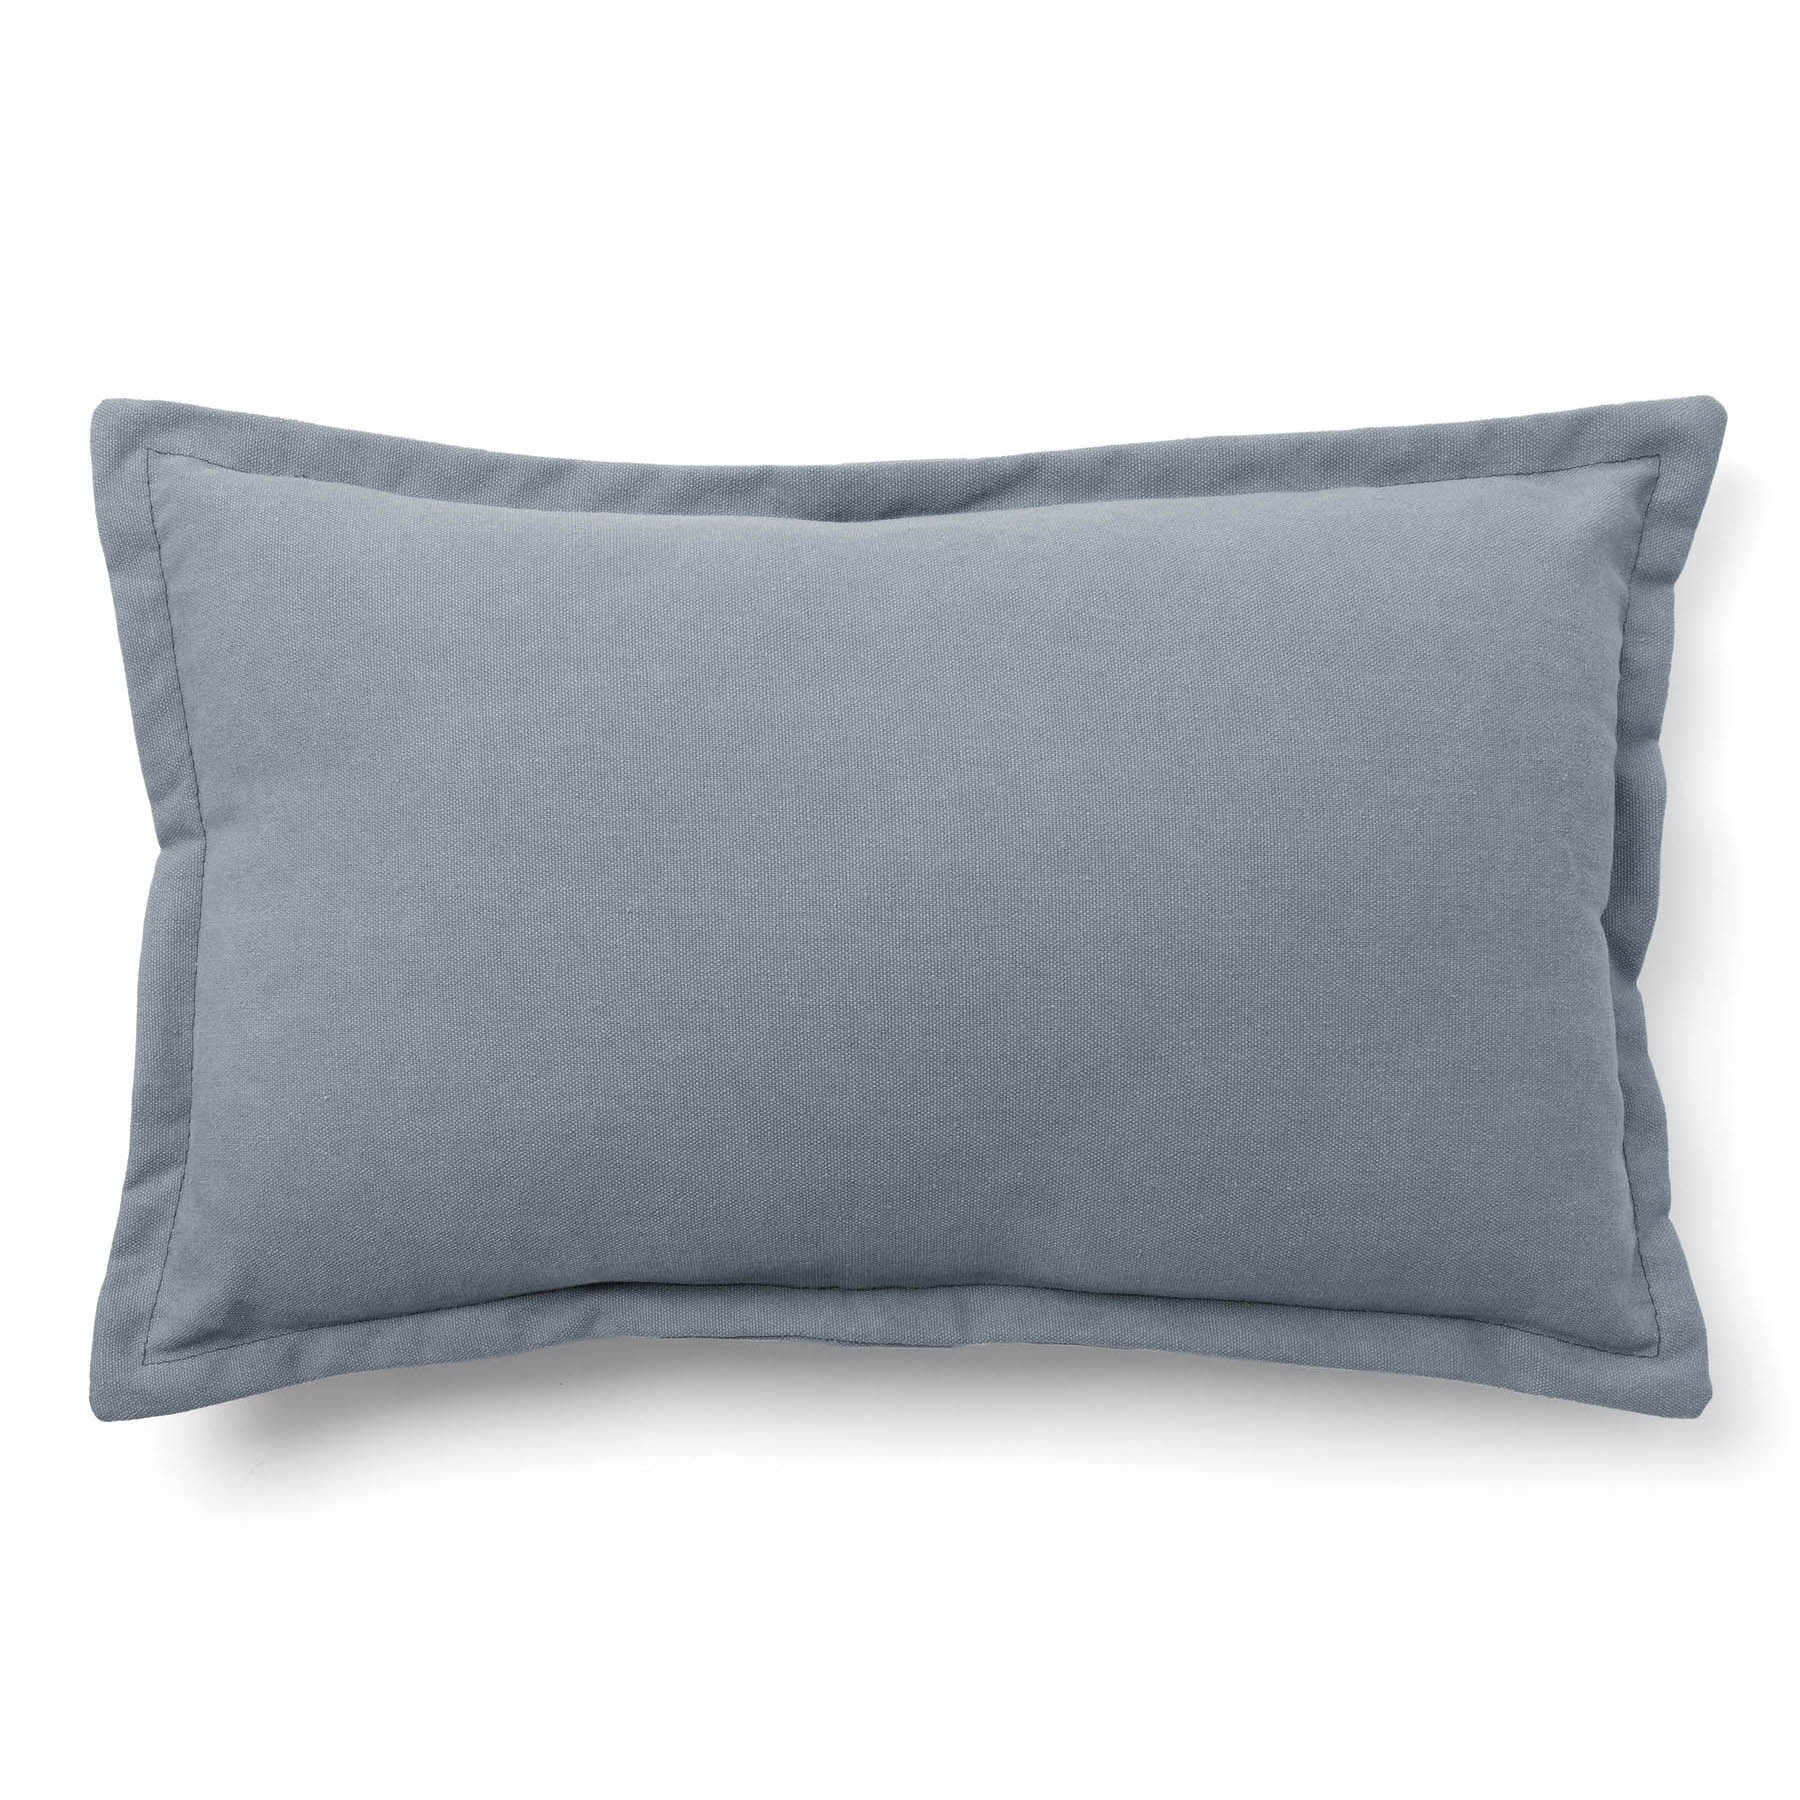 Walden Cotton Fabric Lumbar Cushion, Blue